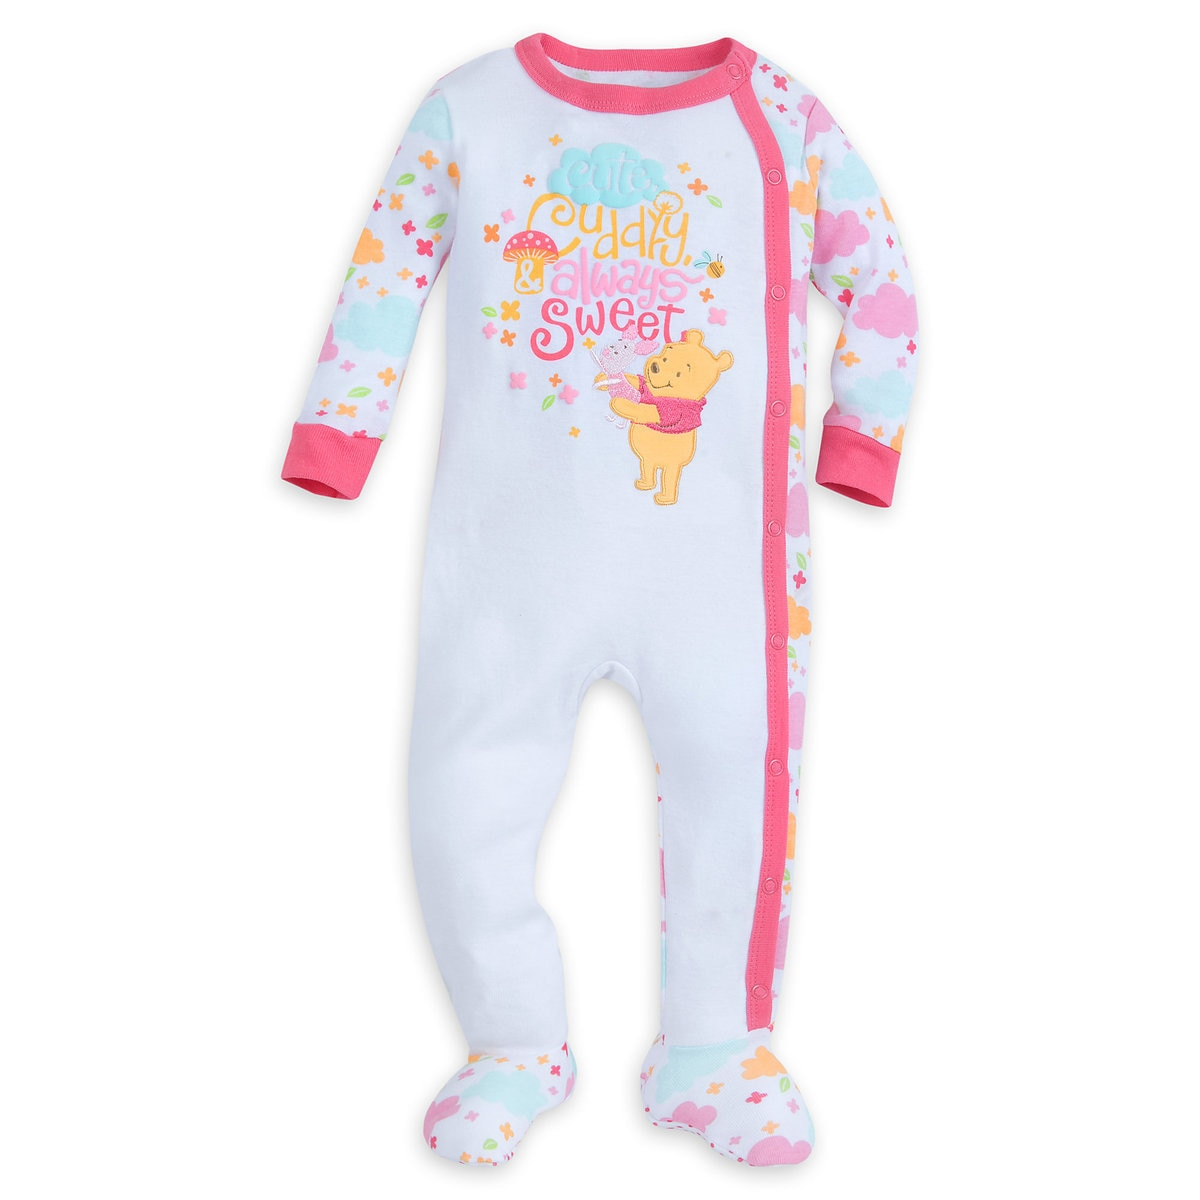 27a716d7dc63 Product Image of Winnie the Pooh and Piglet Footed Stretchie Sleeper for  Baby   1